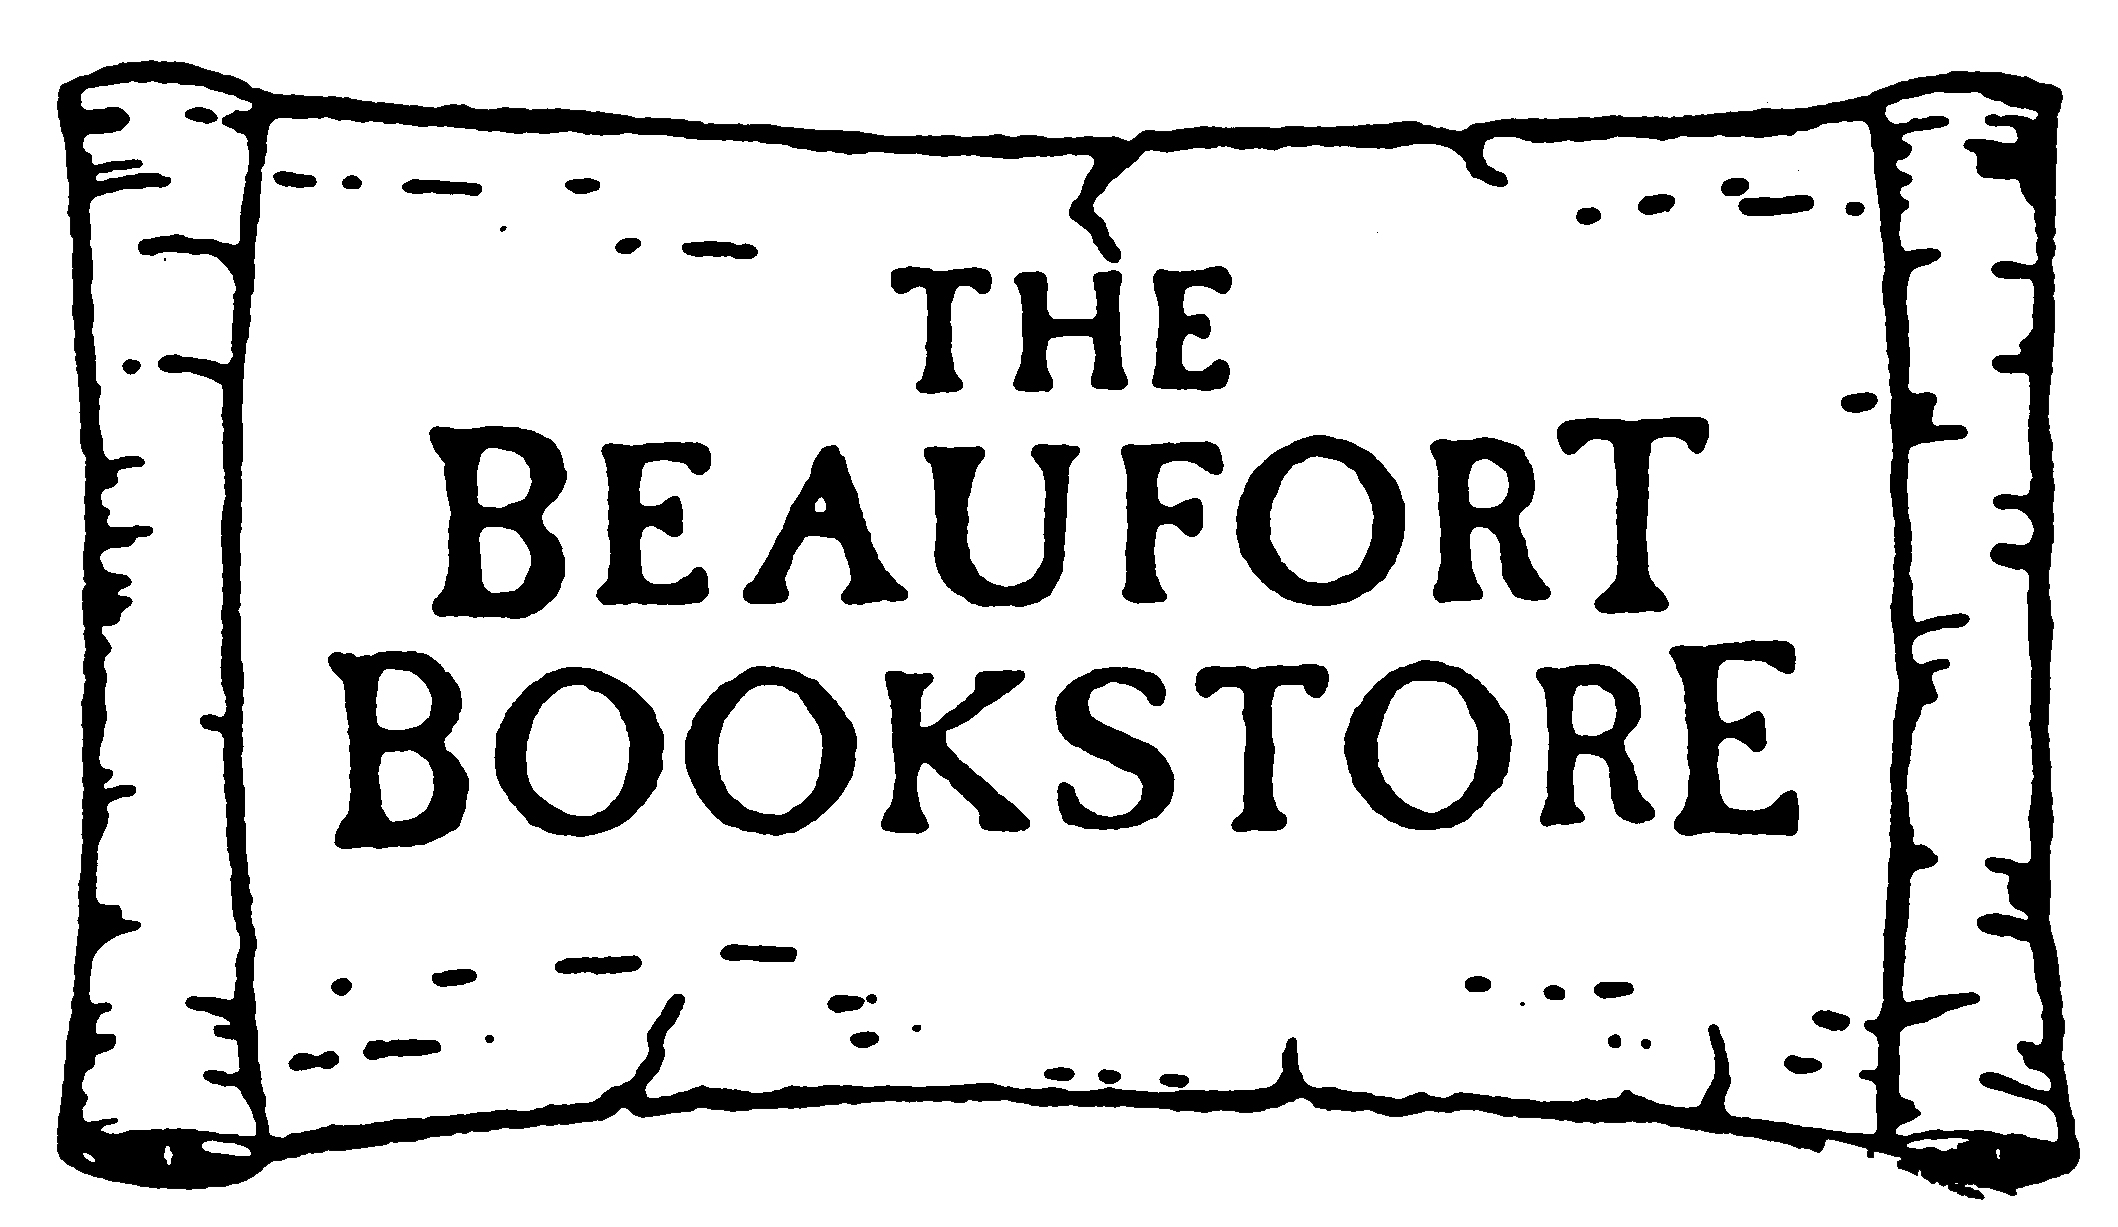 Beaufort Bookstore Photo